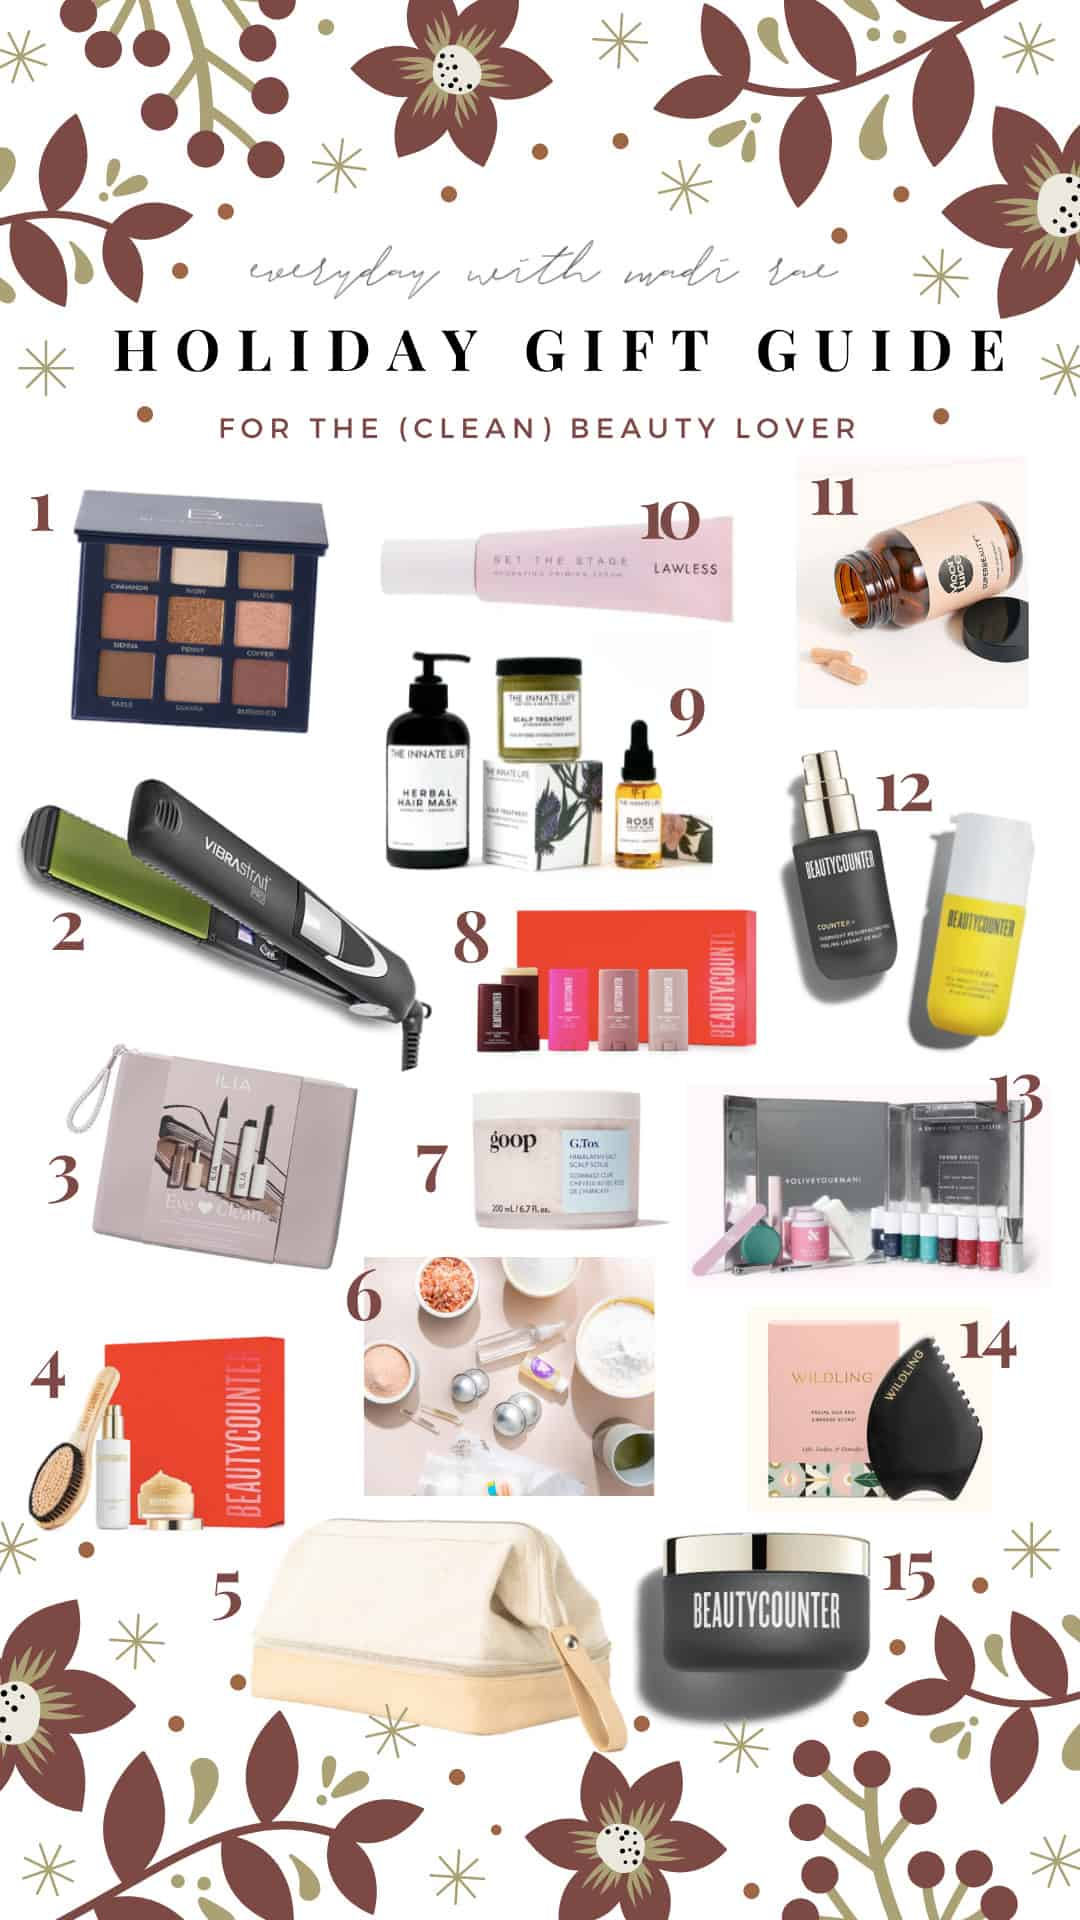 This 2020 Clean Beauty Gift Guide includes amazing, clean skincare, gorgeous makeup, effective deodorant, hair care, & more!